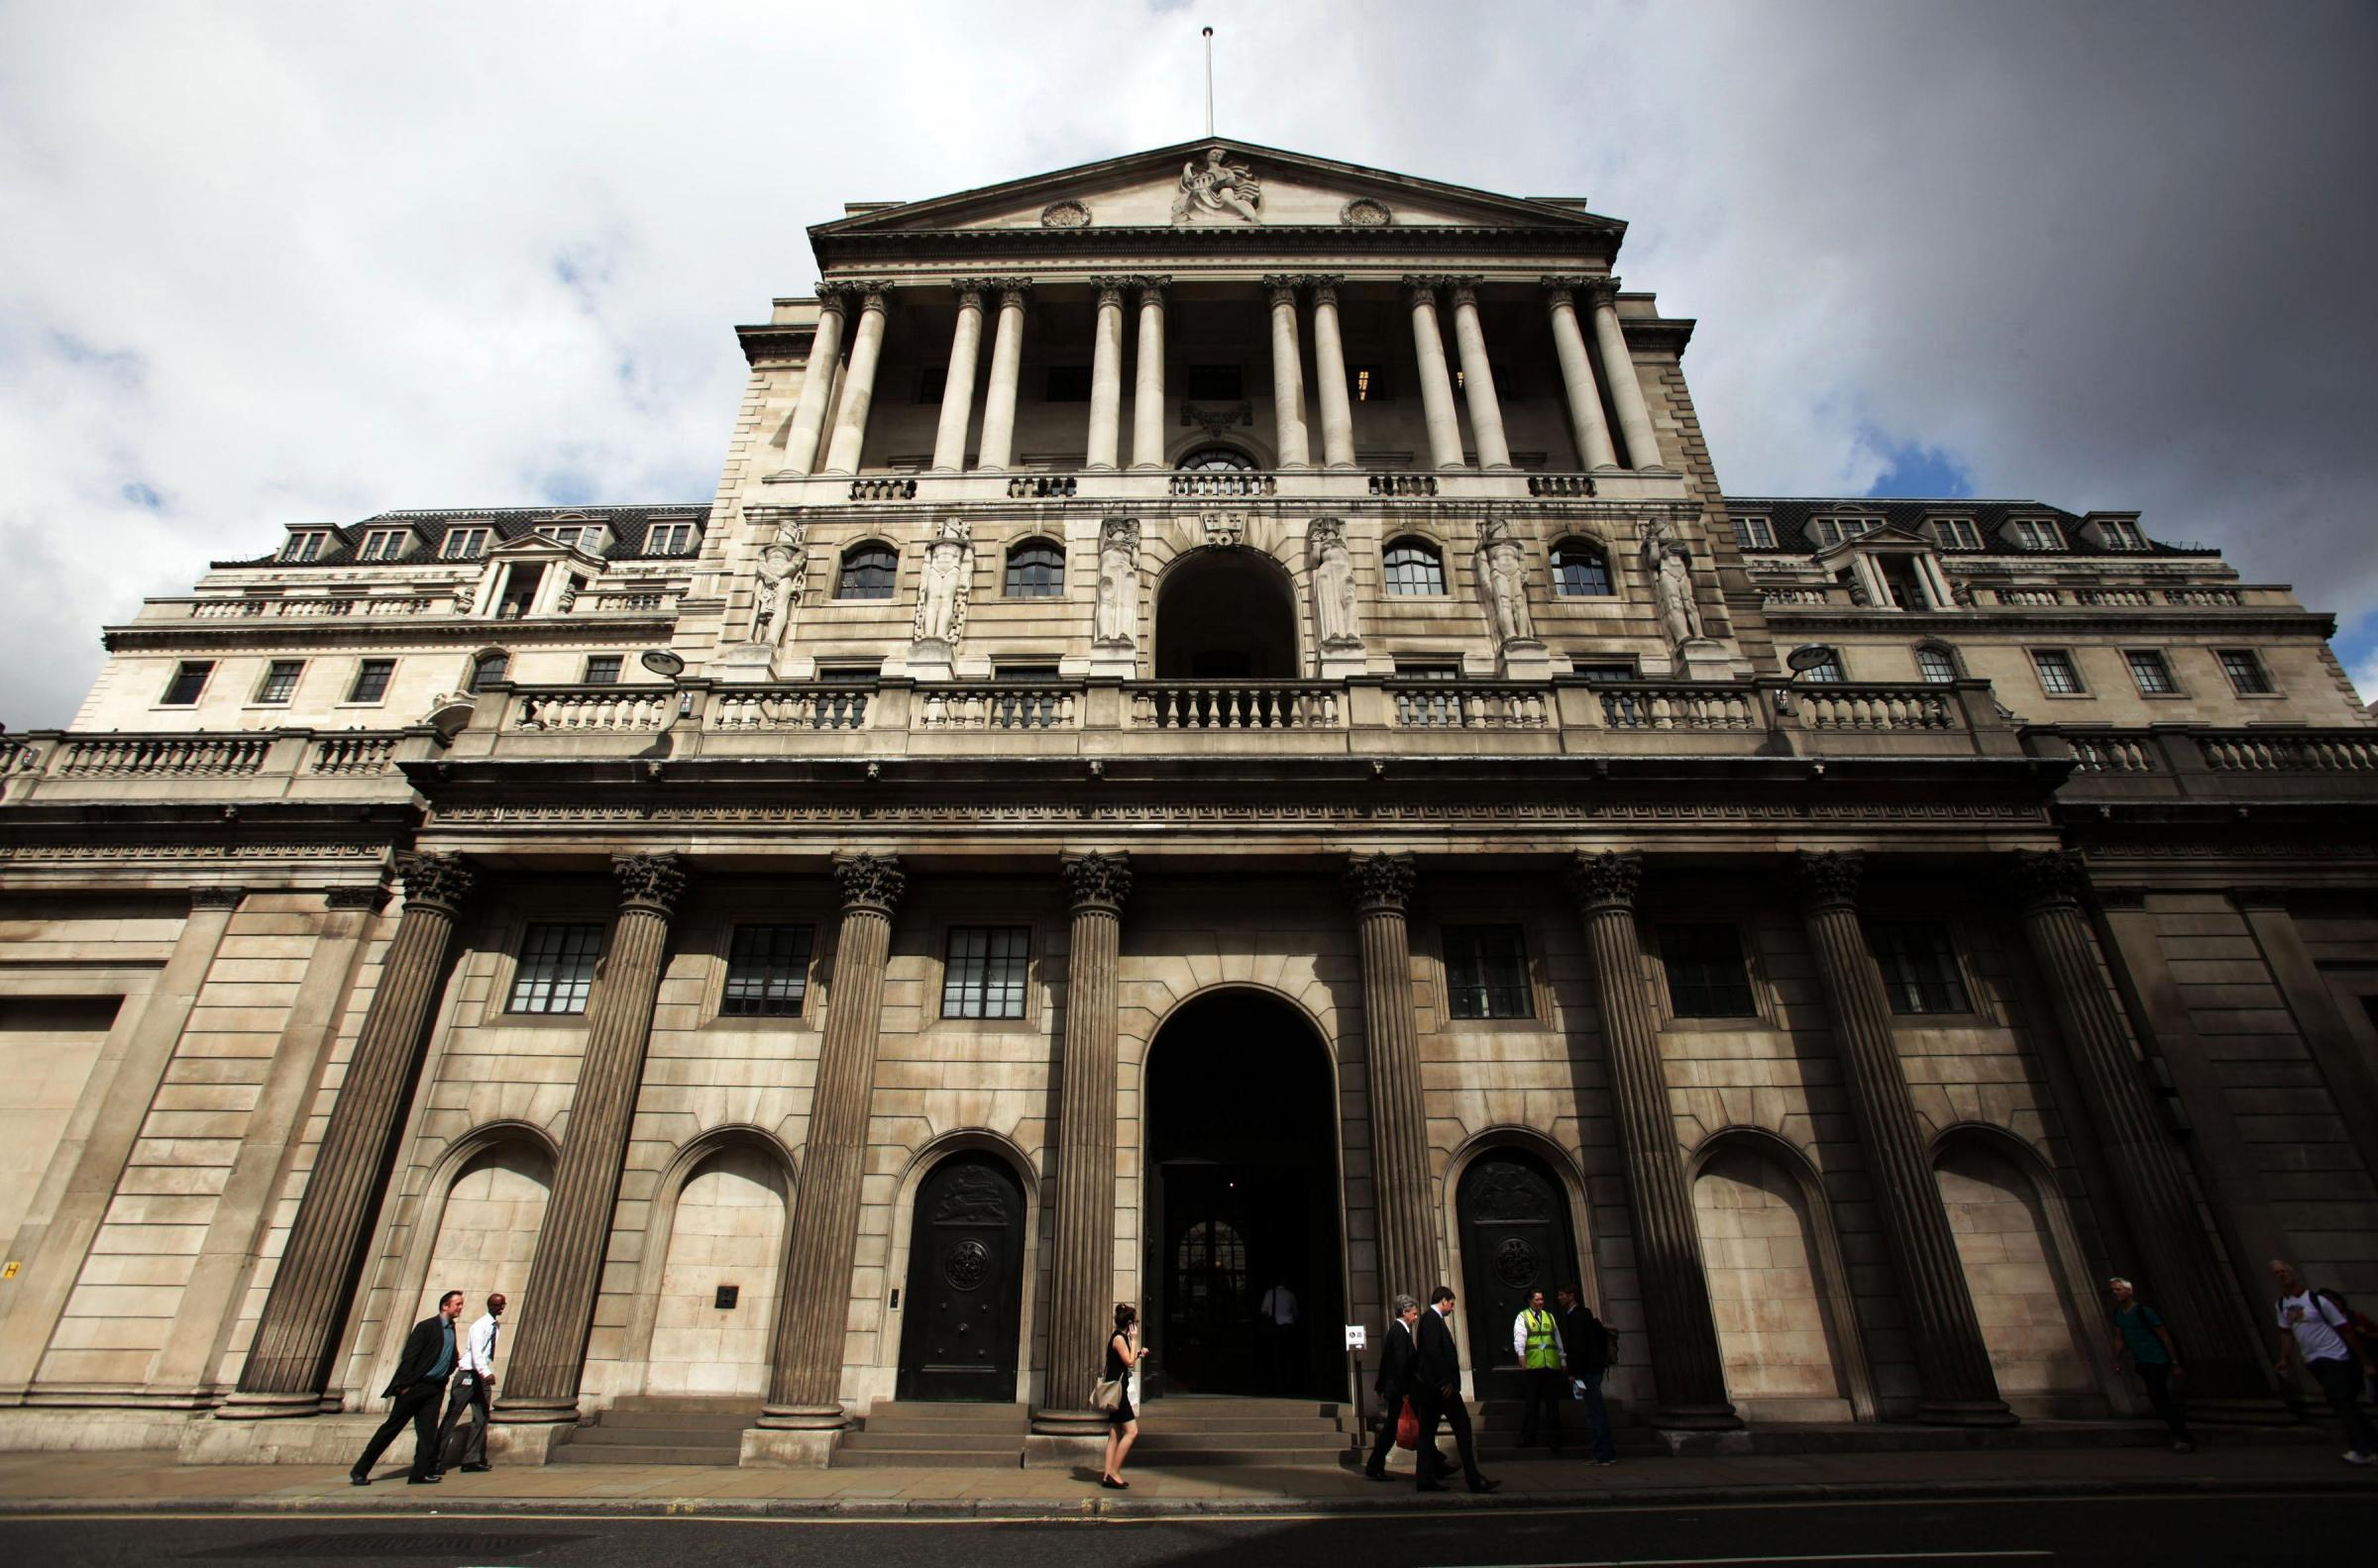 The national final of Target Two Point Zero will take place at the Bank of England